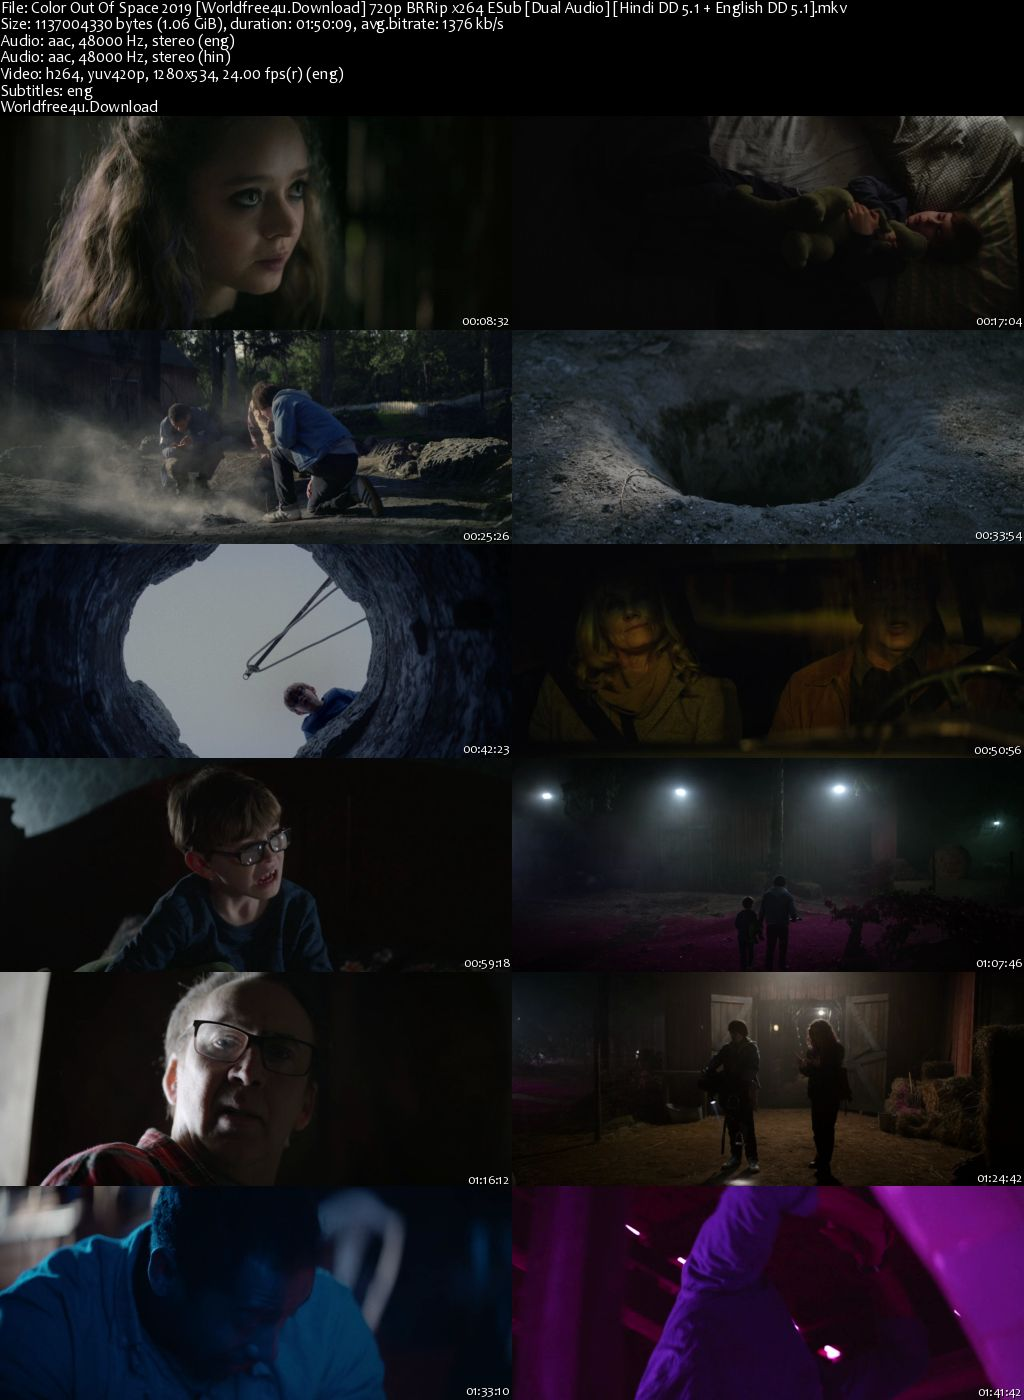 Color Out Of Space 2019 BRRip 720p Dual Audio